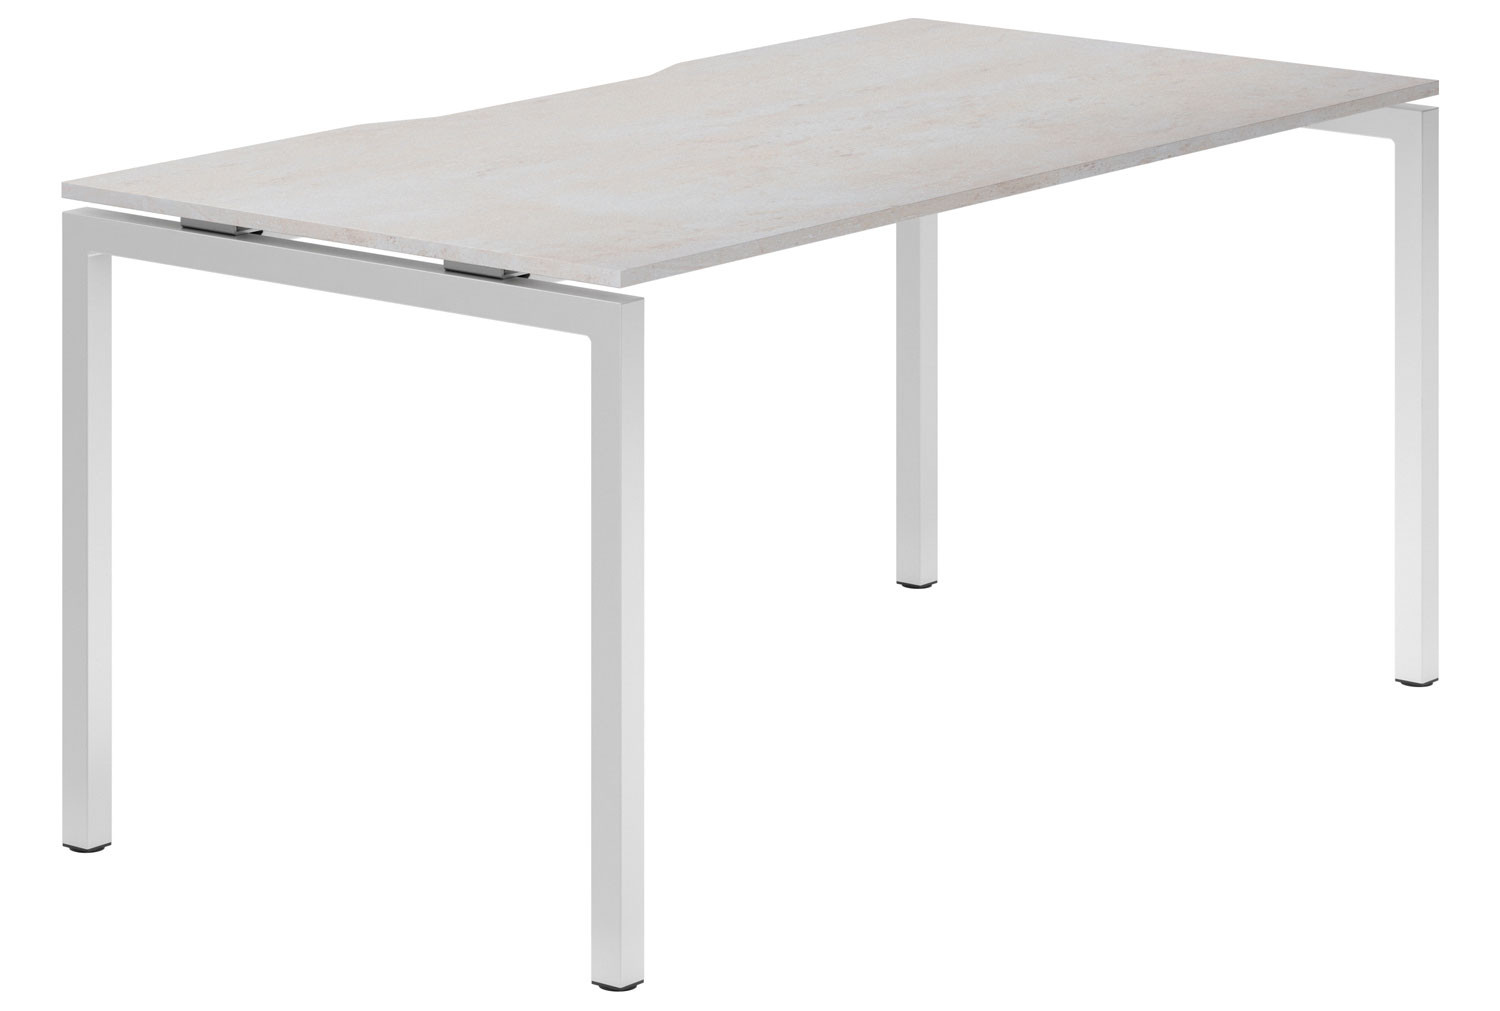 Lasso H-Leg Single Bench Desk (Concrete)